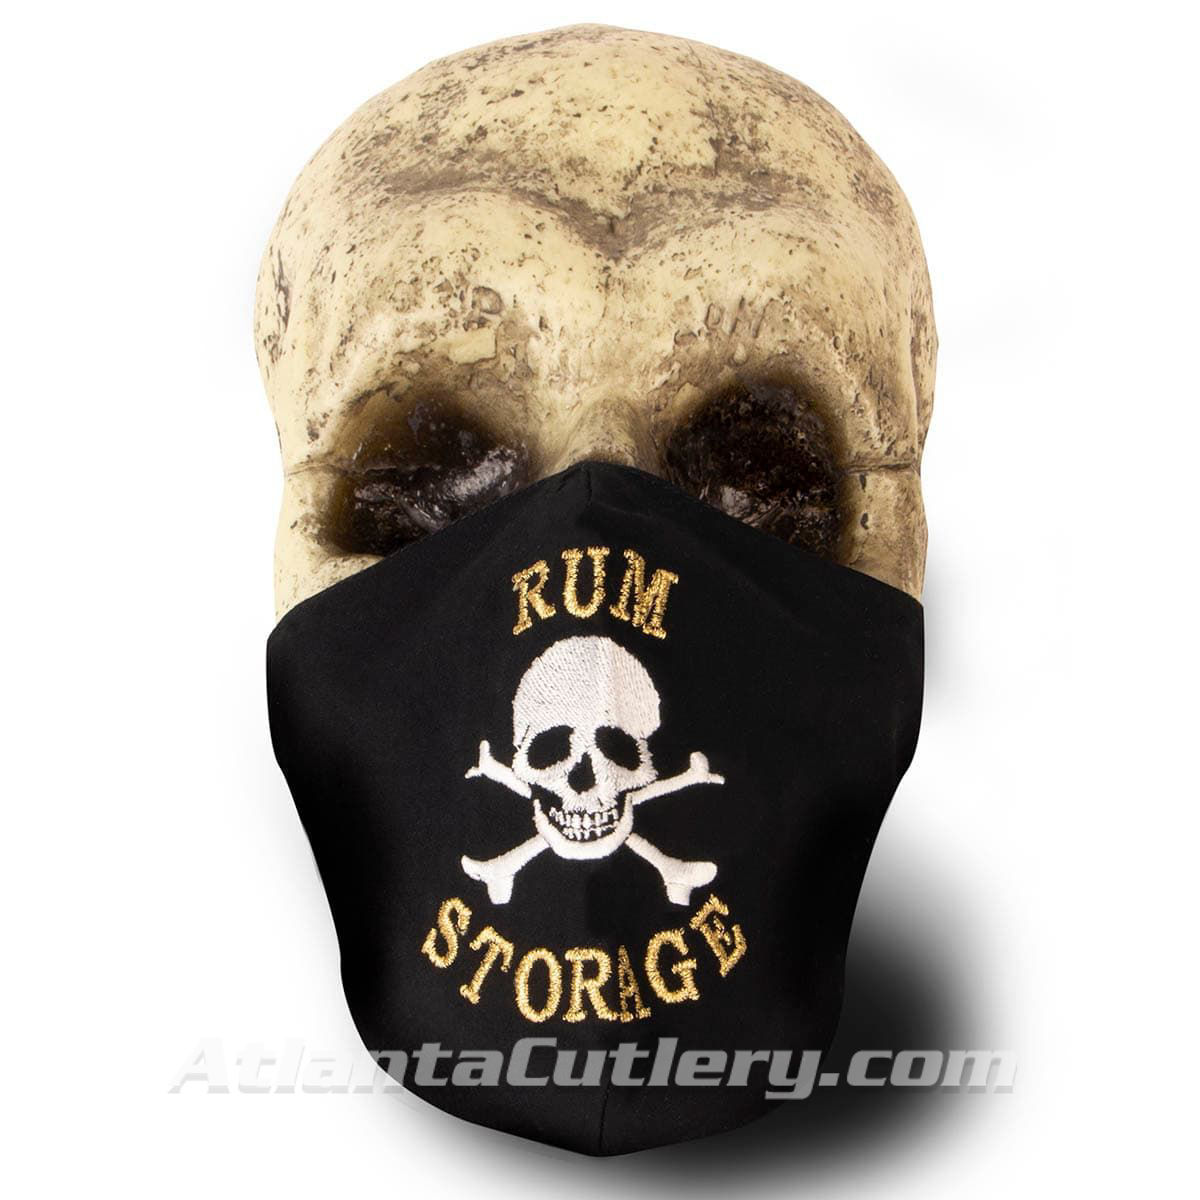 Black Cotton Face Mask with silk embroidery stating Rum Storage, adjustable straps and pocket for disposable filter